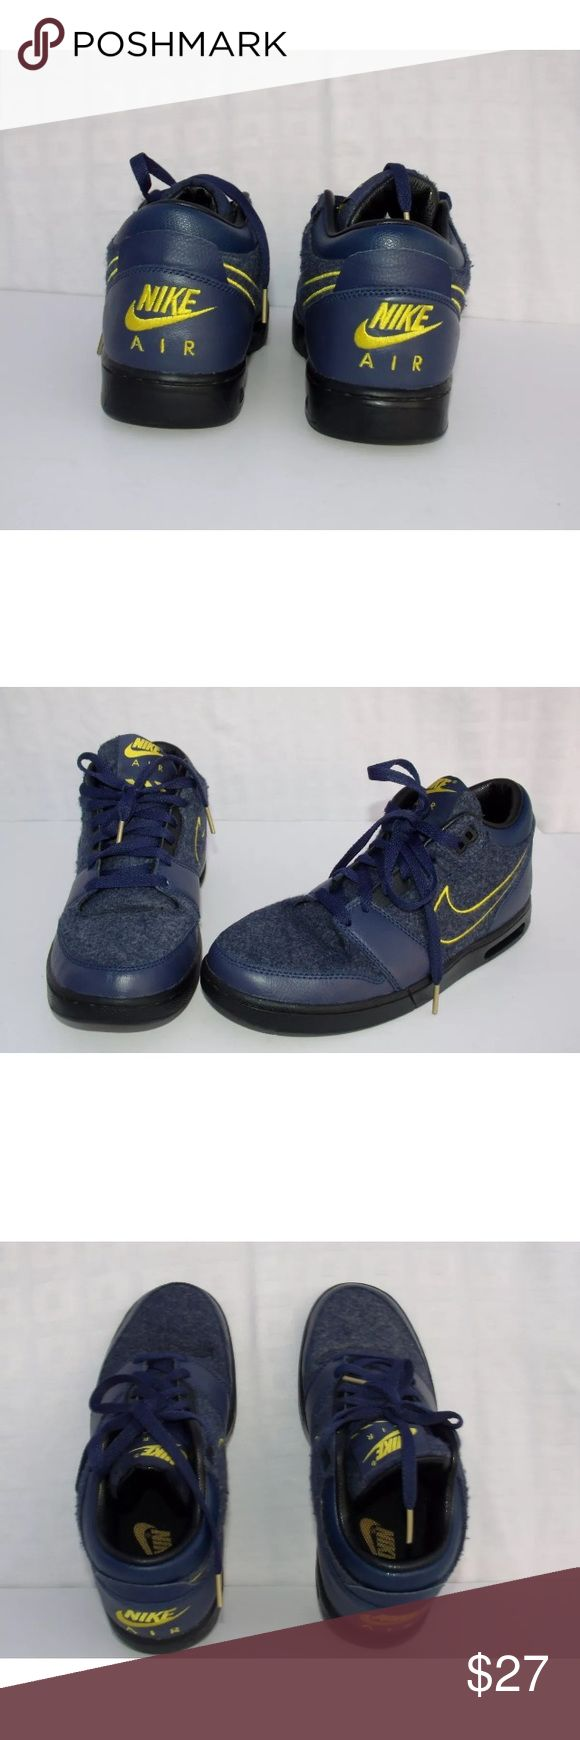 Nike Air Stepback Navy Blue Yellow  Metallic Gold Nike Men's Air Stepback Premium Michigan Colors 685150 447 Style #: 685150 447 Midnight Navy / Mid Navy / Metallic Gold / Black US Men's Size 7 Condition: Gently used shoes, worn twice by me. Small creasing in toe area-Description: The Nike Air Stepback is a retro inspired basketball silhouette from Nike Sportswear that is now  released in Michigan colorway as a nod to the Fab Five. This retro sneaker features a full Navy-based upper that is…